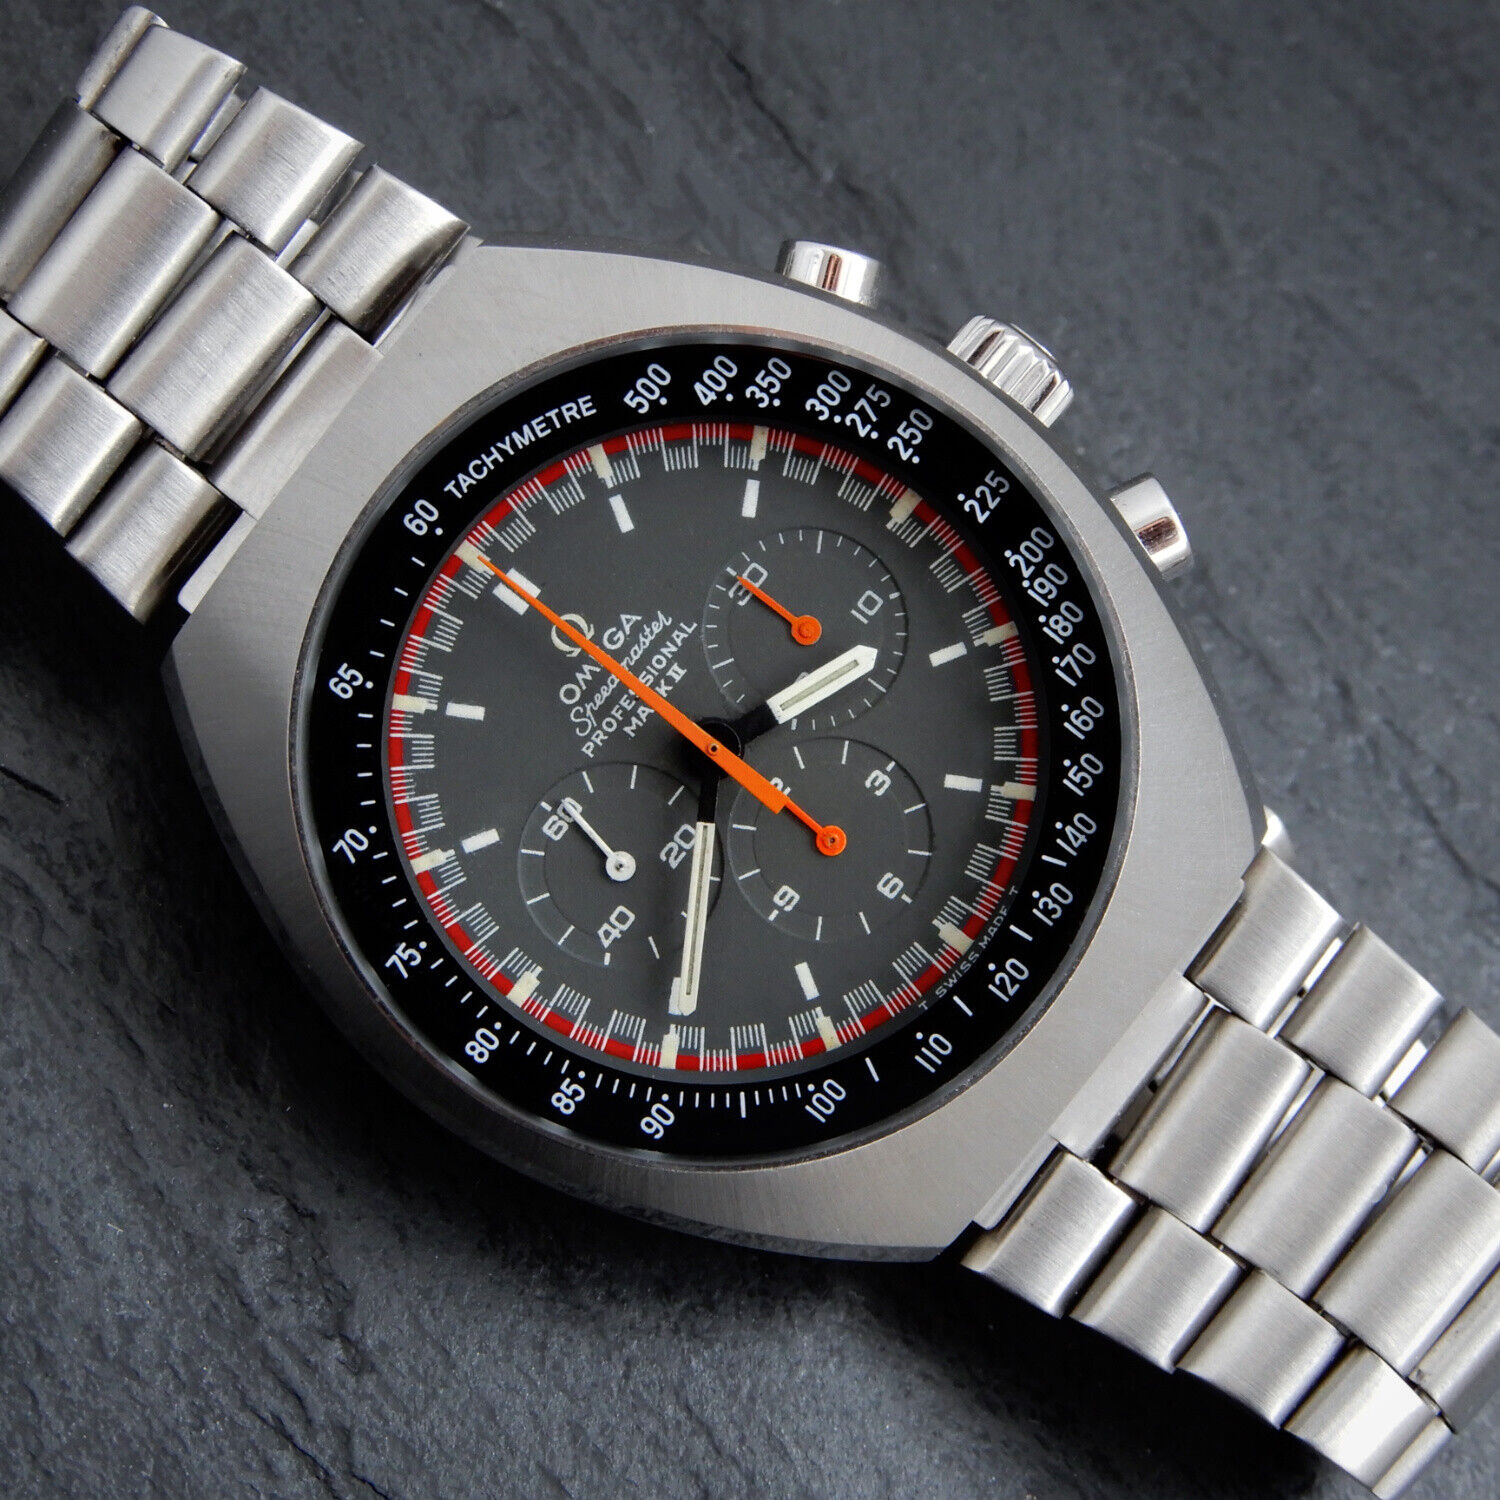 OMEGA Early 1969 SPEEDMASTER CAL. 861 Professional Mark II Vintage Racing Dial - watch picture 1